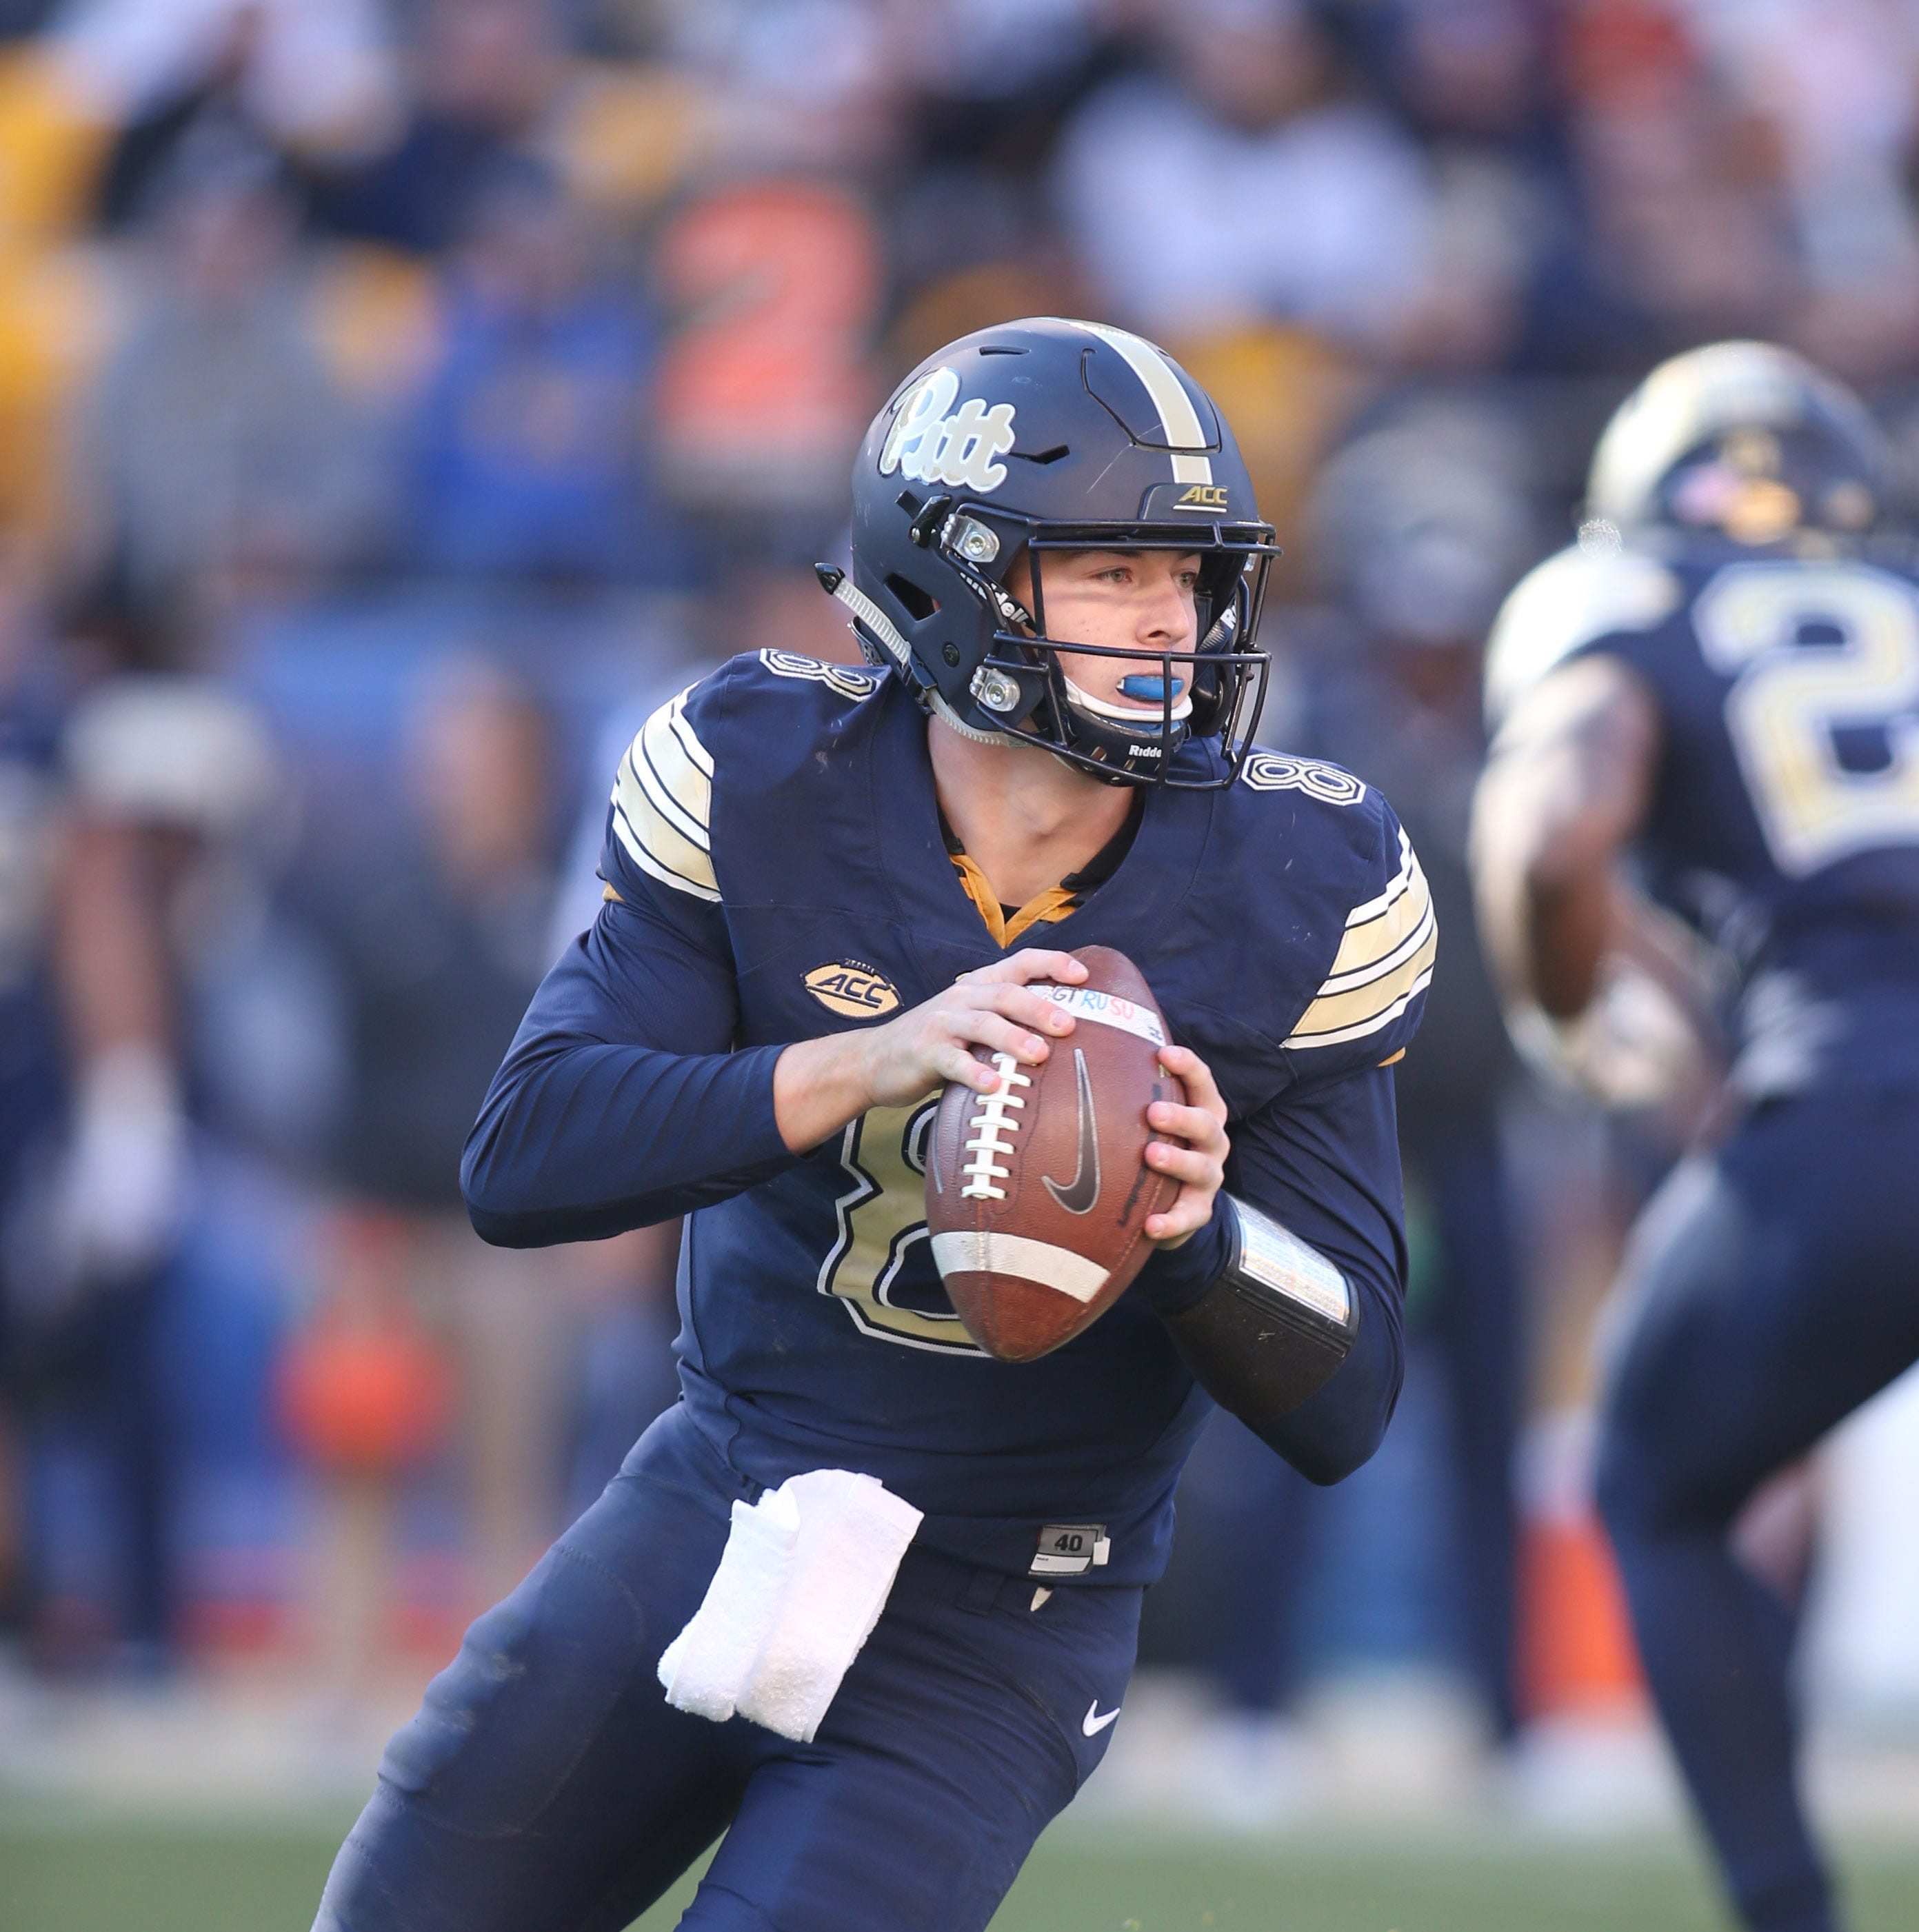 Edelson: Ocean's Pickett looks to make history at Pitt